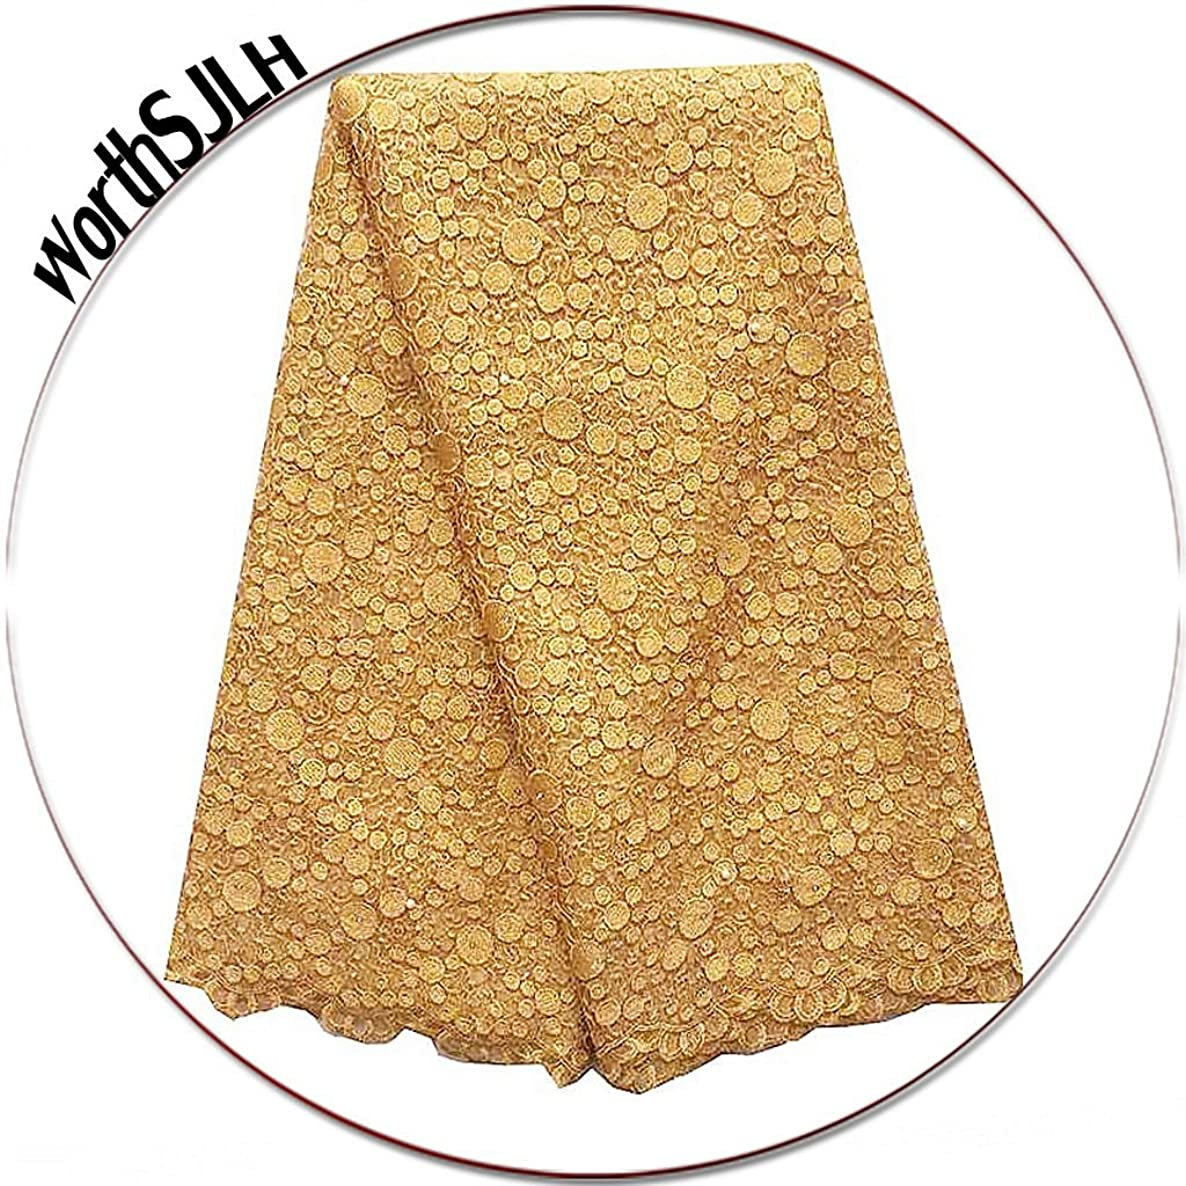 WorthSJLH 5 Yards African Lace Fabric 2018 Gold Nigerian French Lace Fabric Bridal Guipure Cord Lace Fabric for Party LF827(Gold)) xpzh6808745695